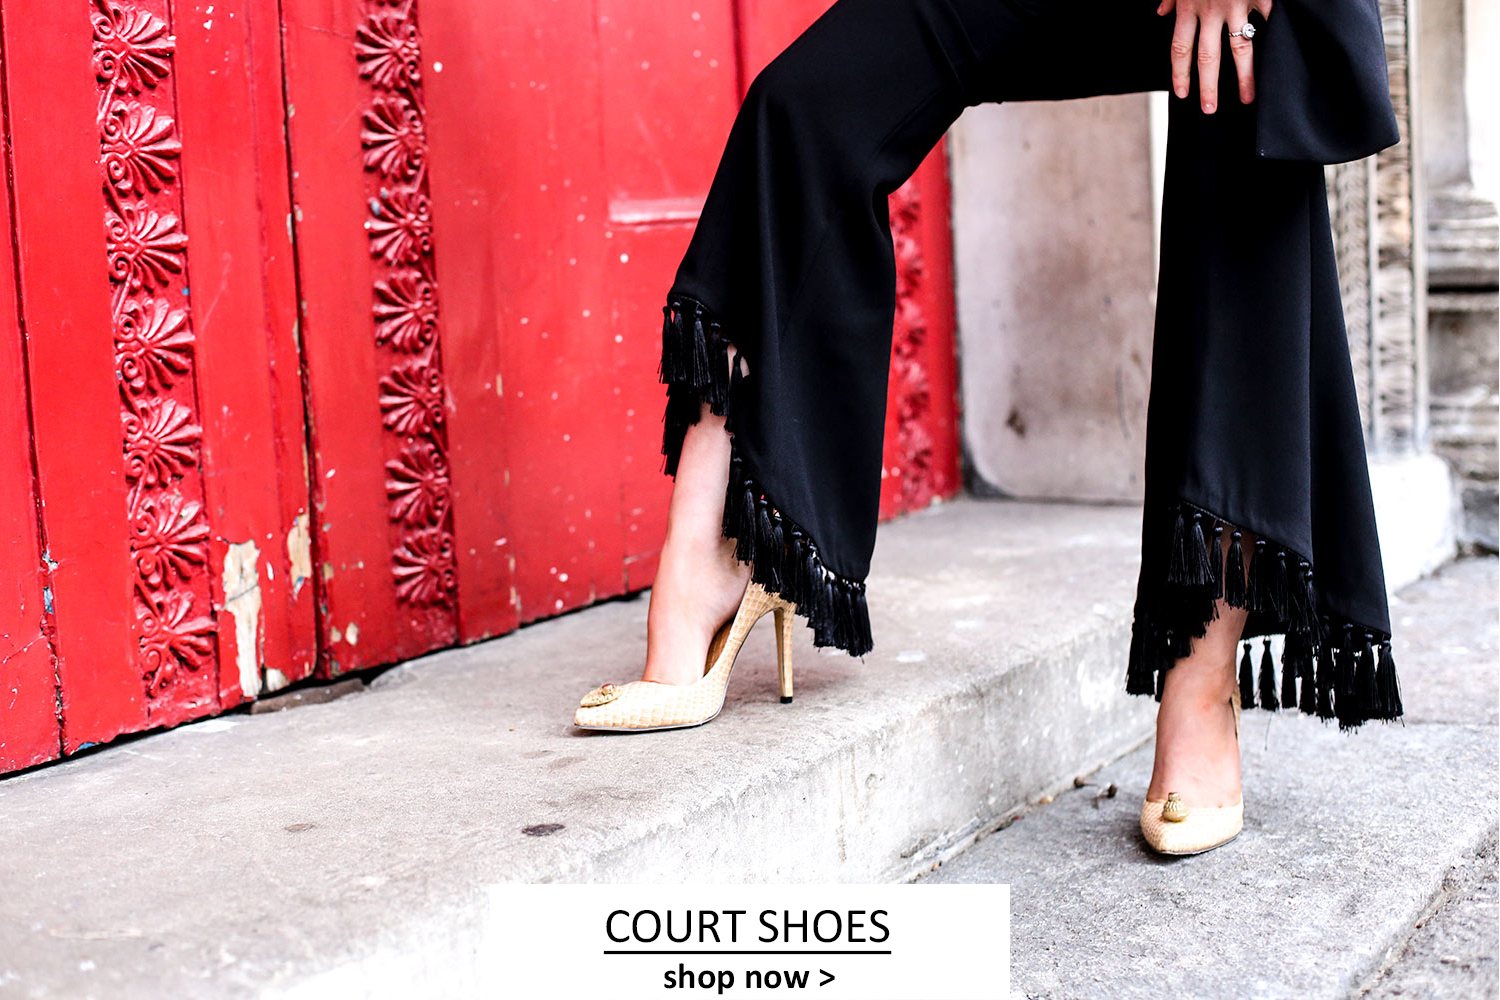 Cream court shoes with gold embellishments